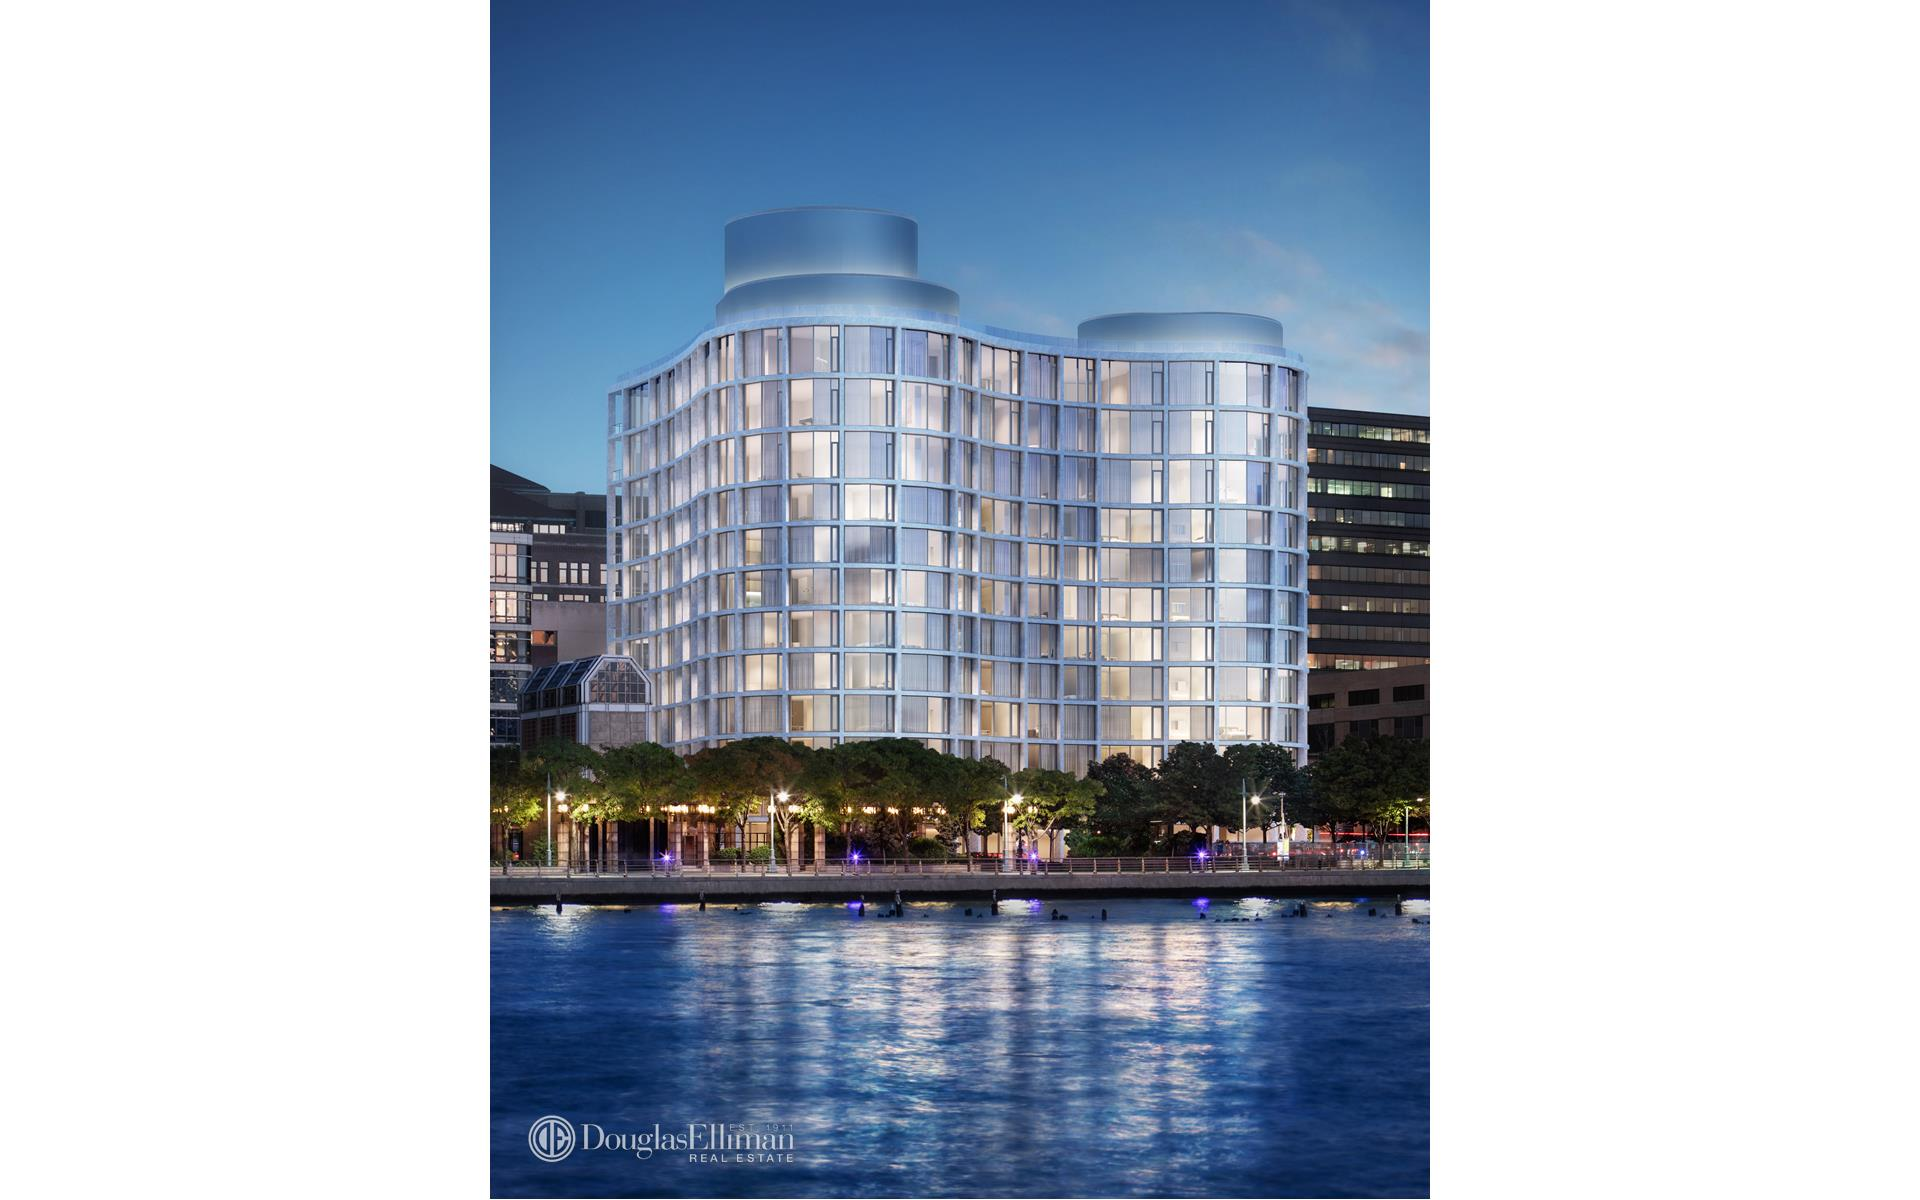 Condominium for Sale at 160 Leroy Street South-11a 160 Leroy Street New York, New York 10014 United States